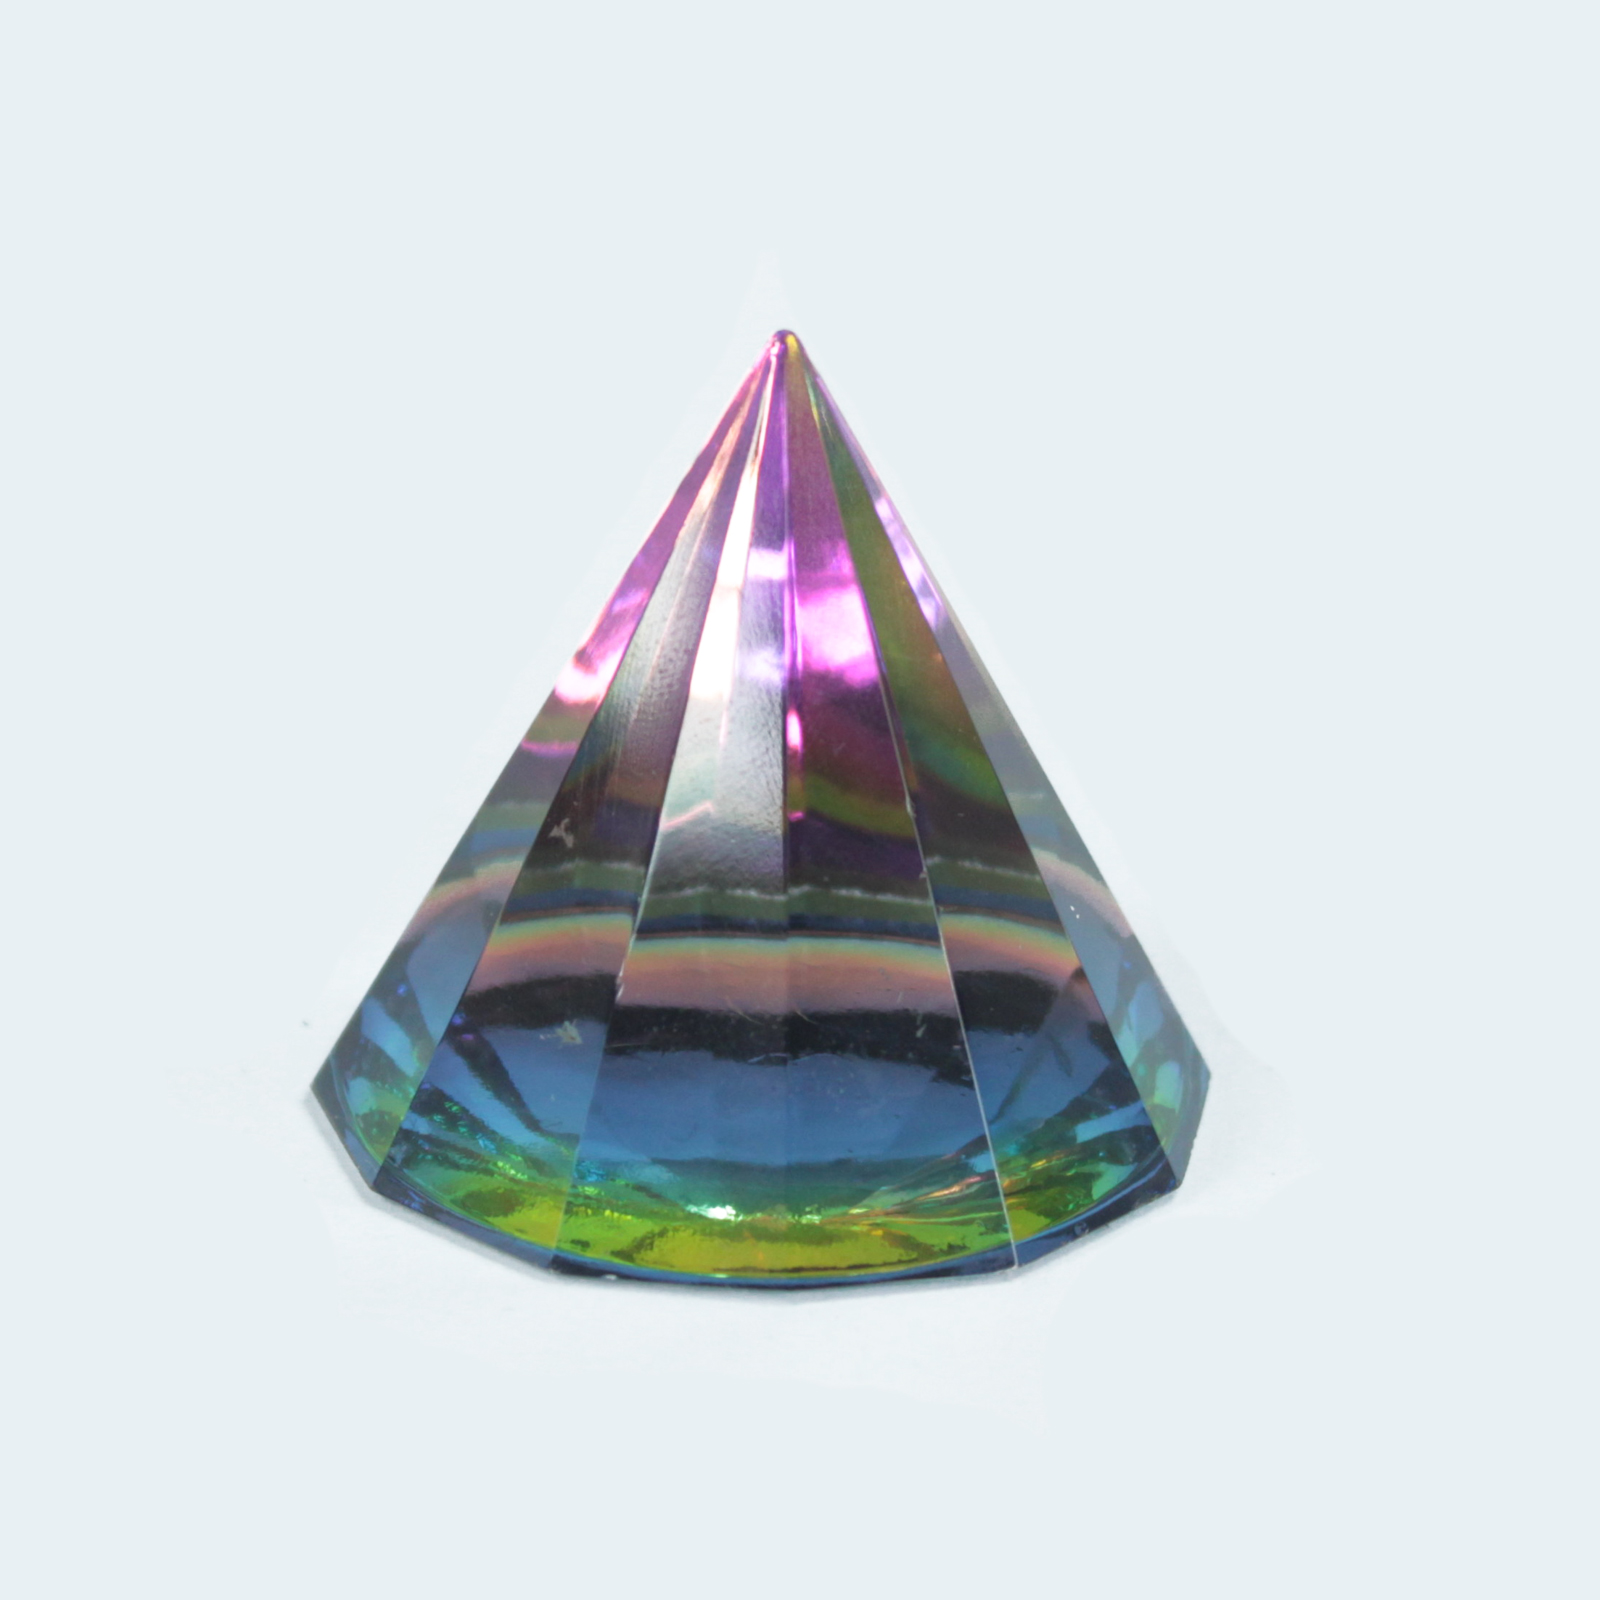 12 sided Magical Pyramid 40 mm